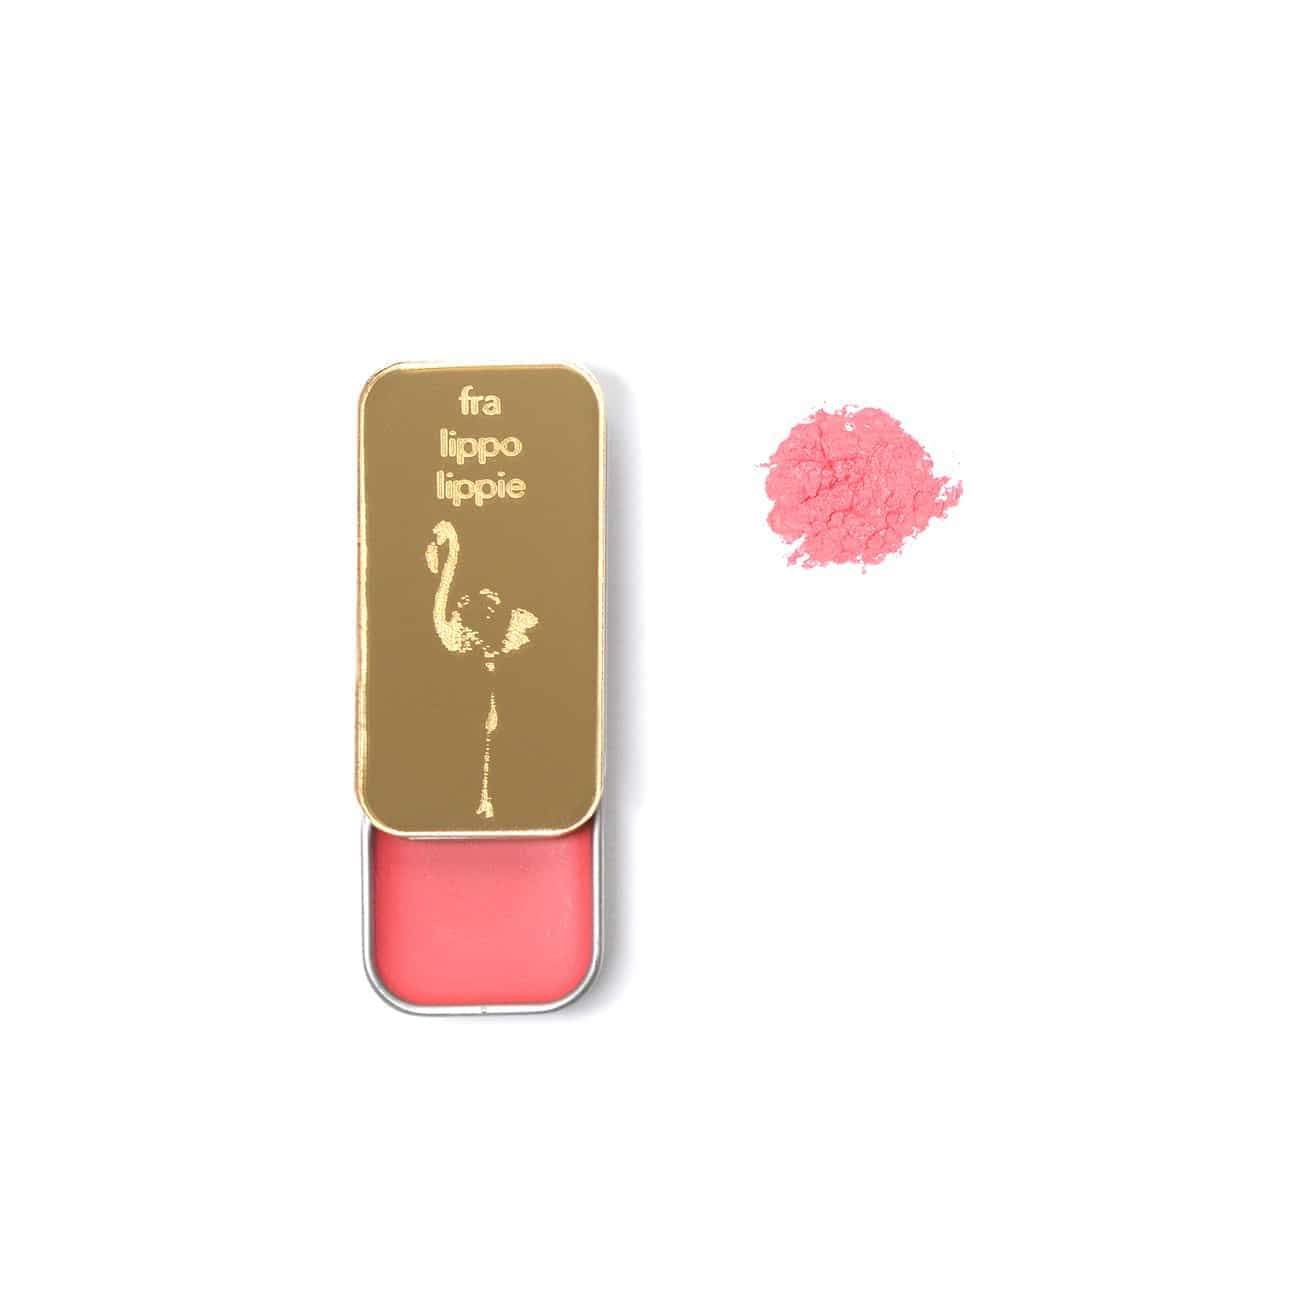 Vegan Lip & Cheek Colour 'A Whole Lotta Rosa' Lippenstift Fra Lippo Lippie - Genuine Selection